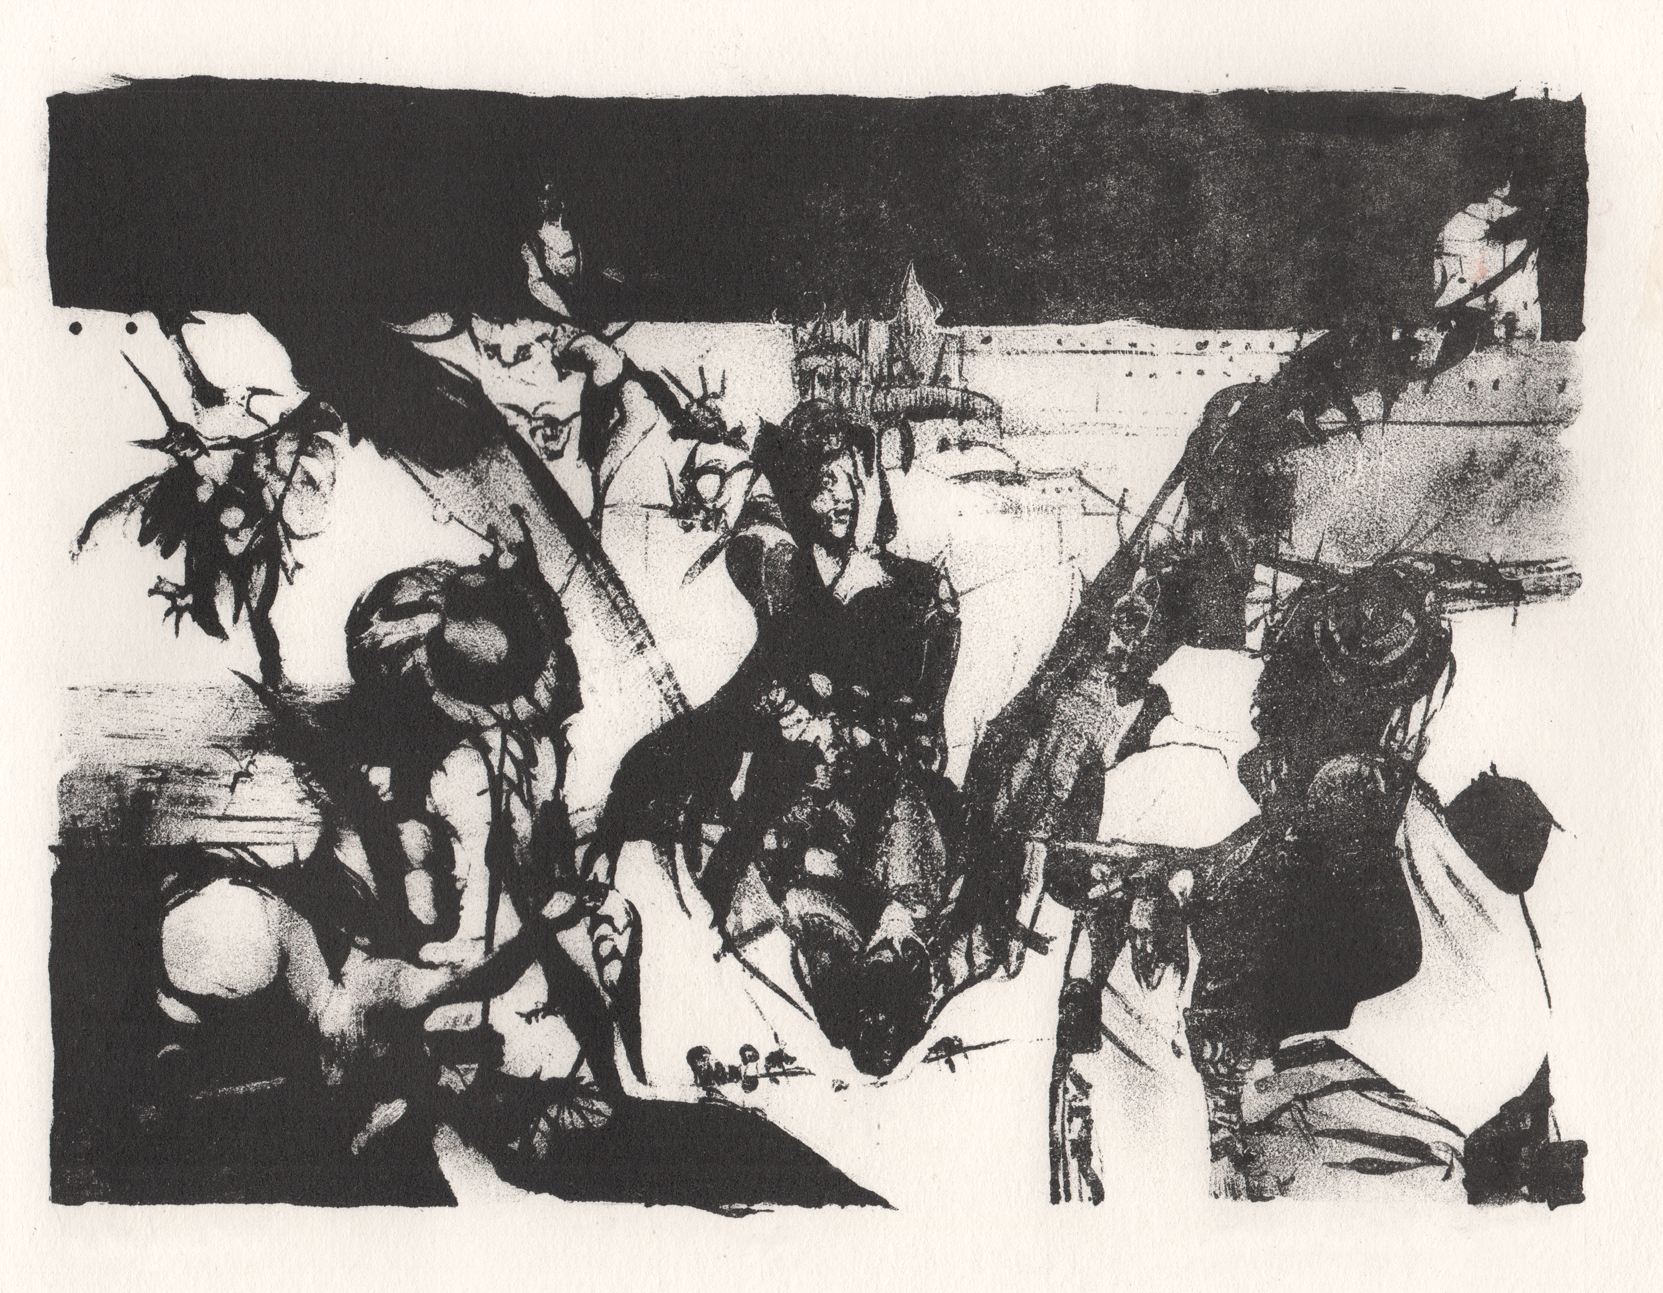 The Art of Printmaking / Graphic Art - Untitled, lithography.